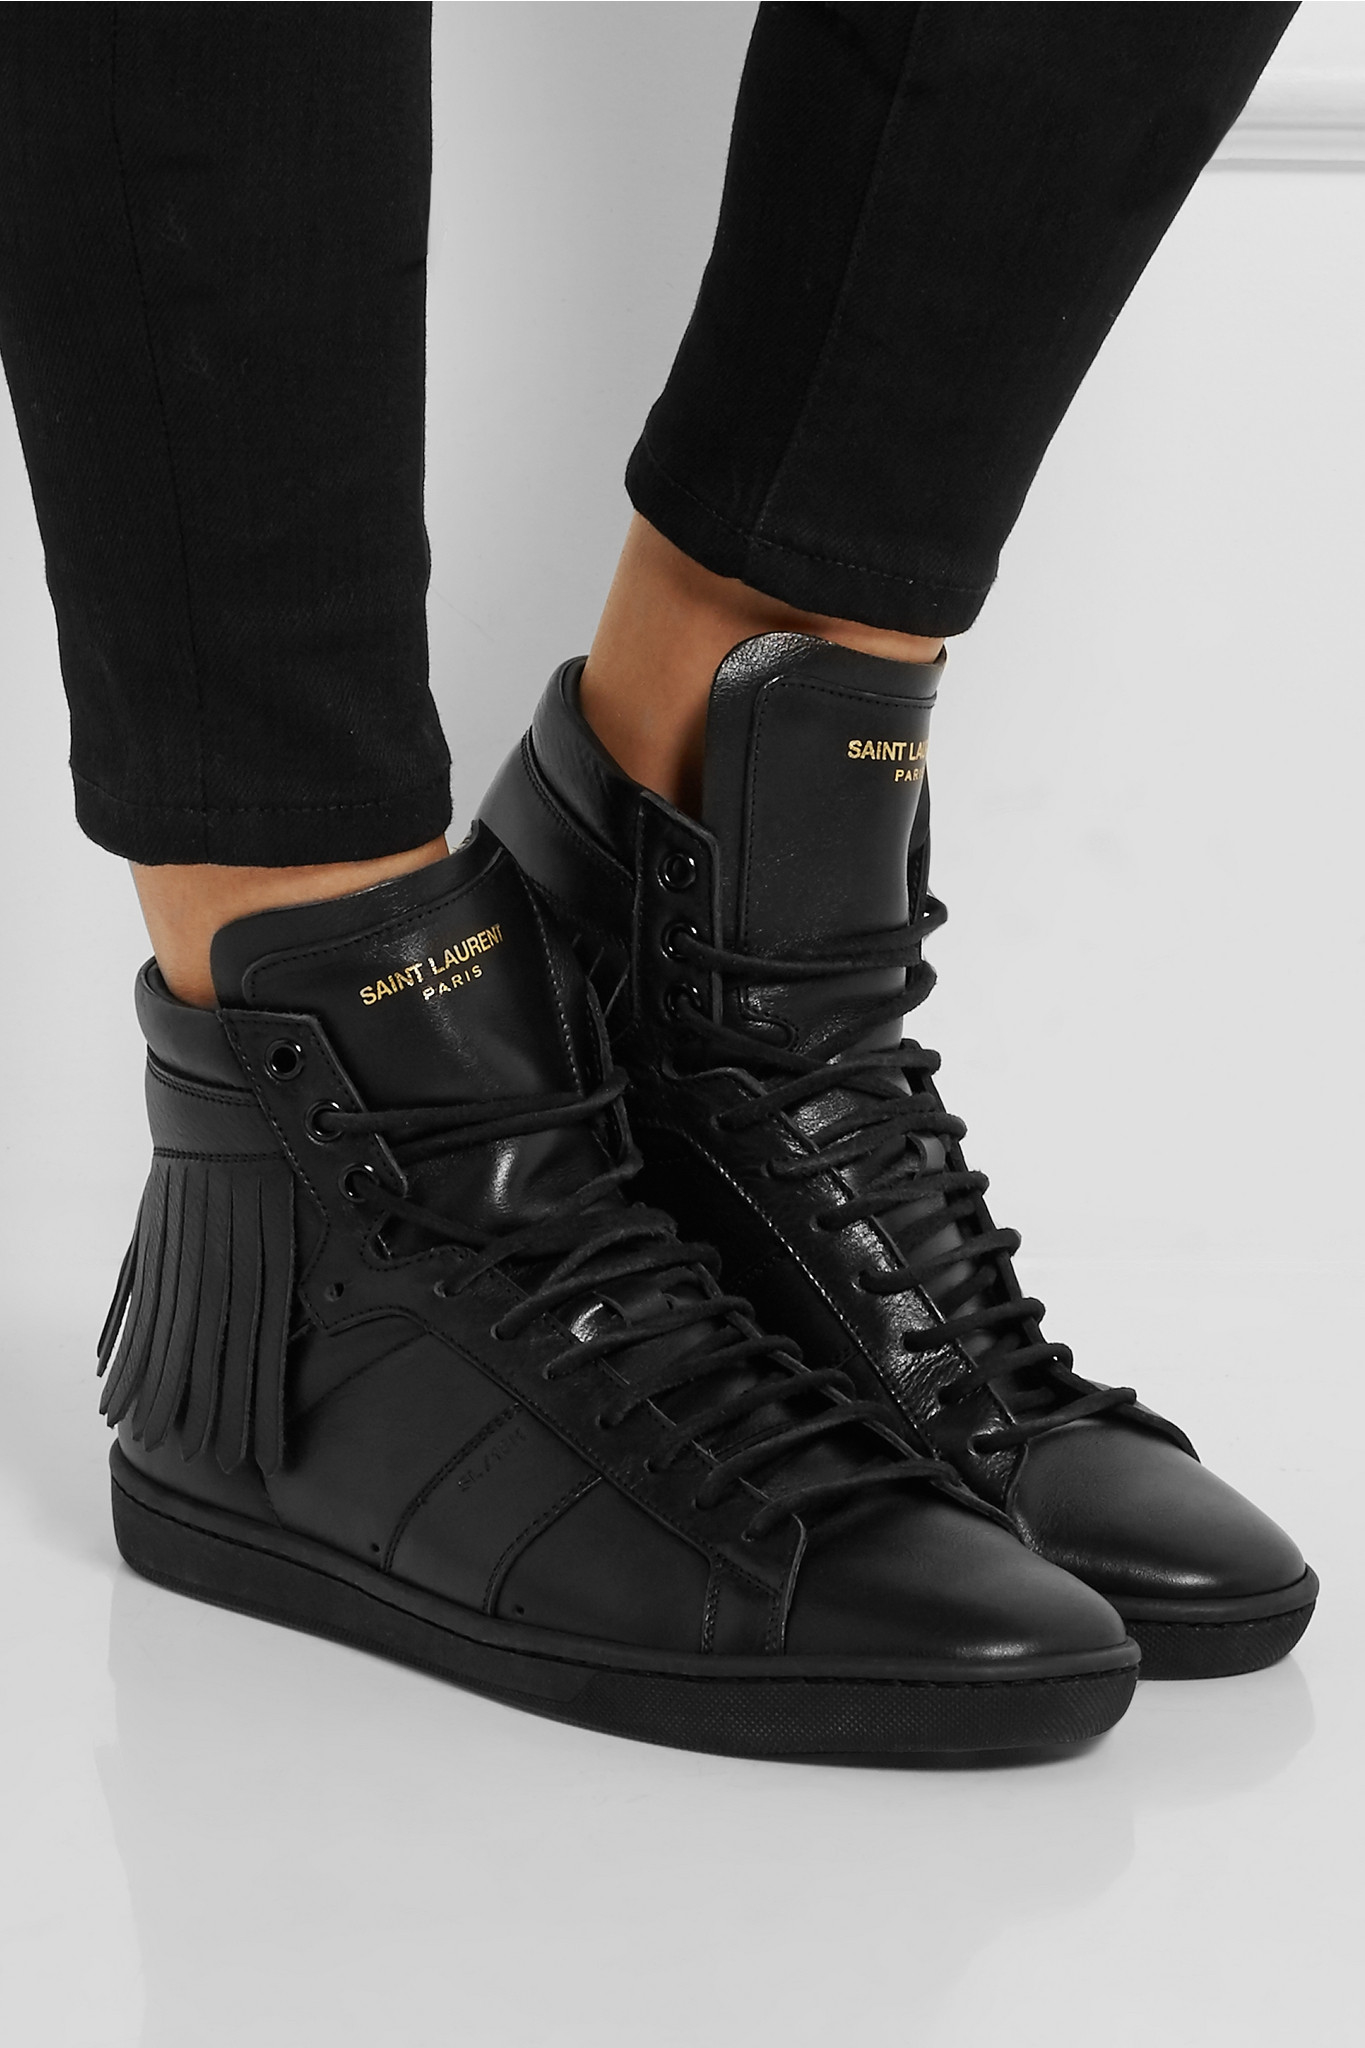 Saint LaurentLeather High-Top Sneakers in . Xu7JvmCL